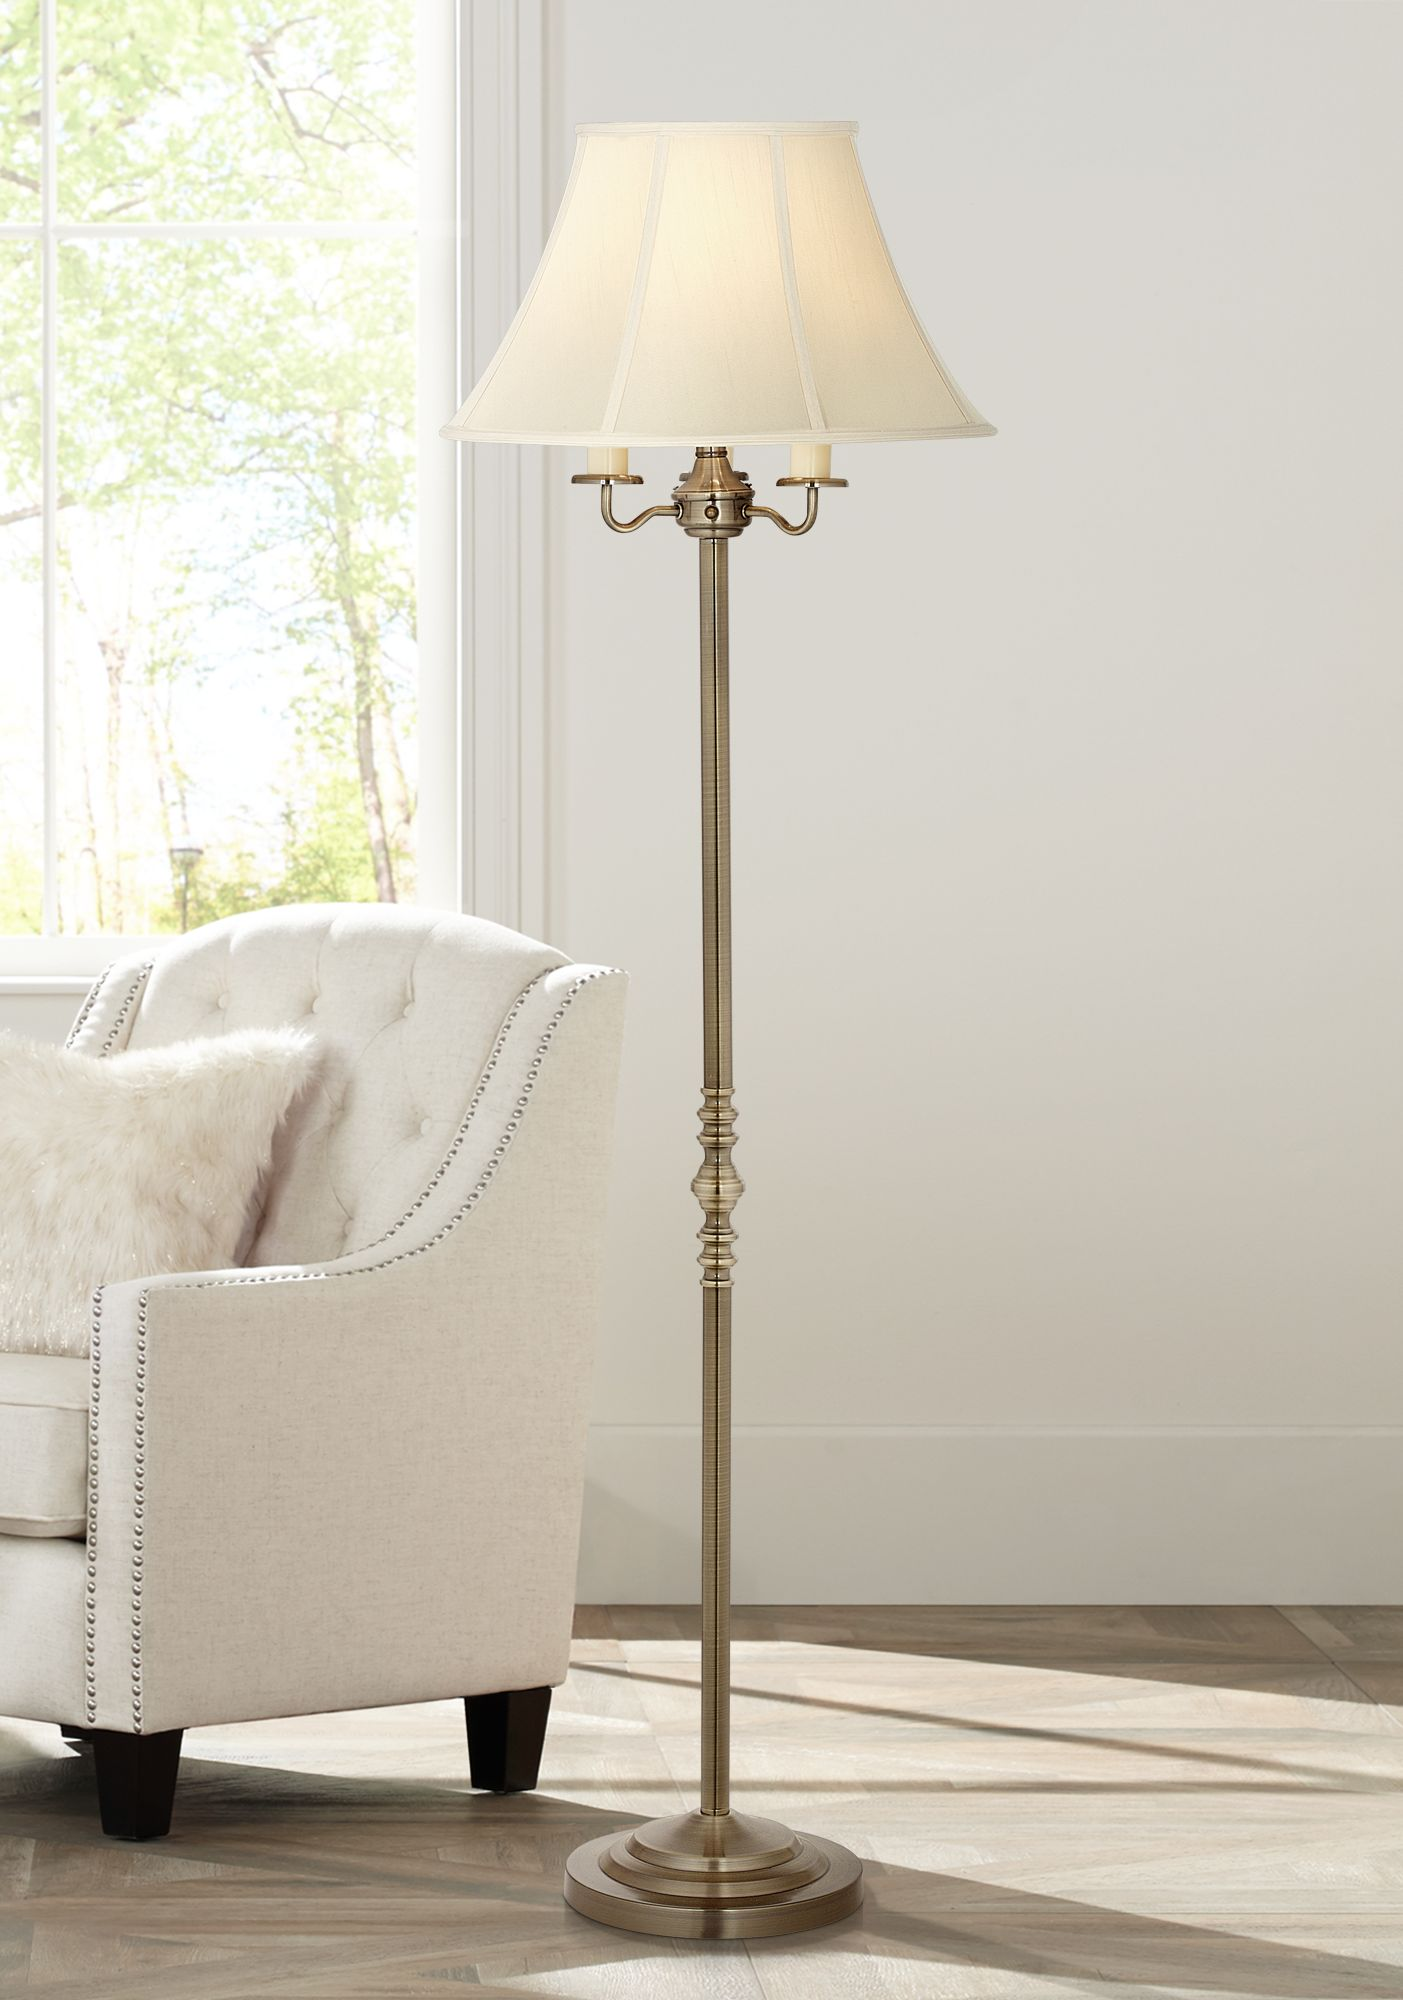 montebello antique brass floor lamp by regency hill